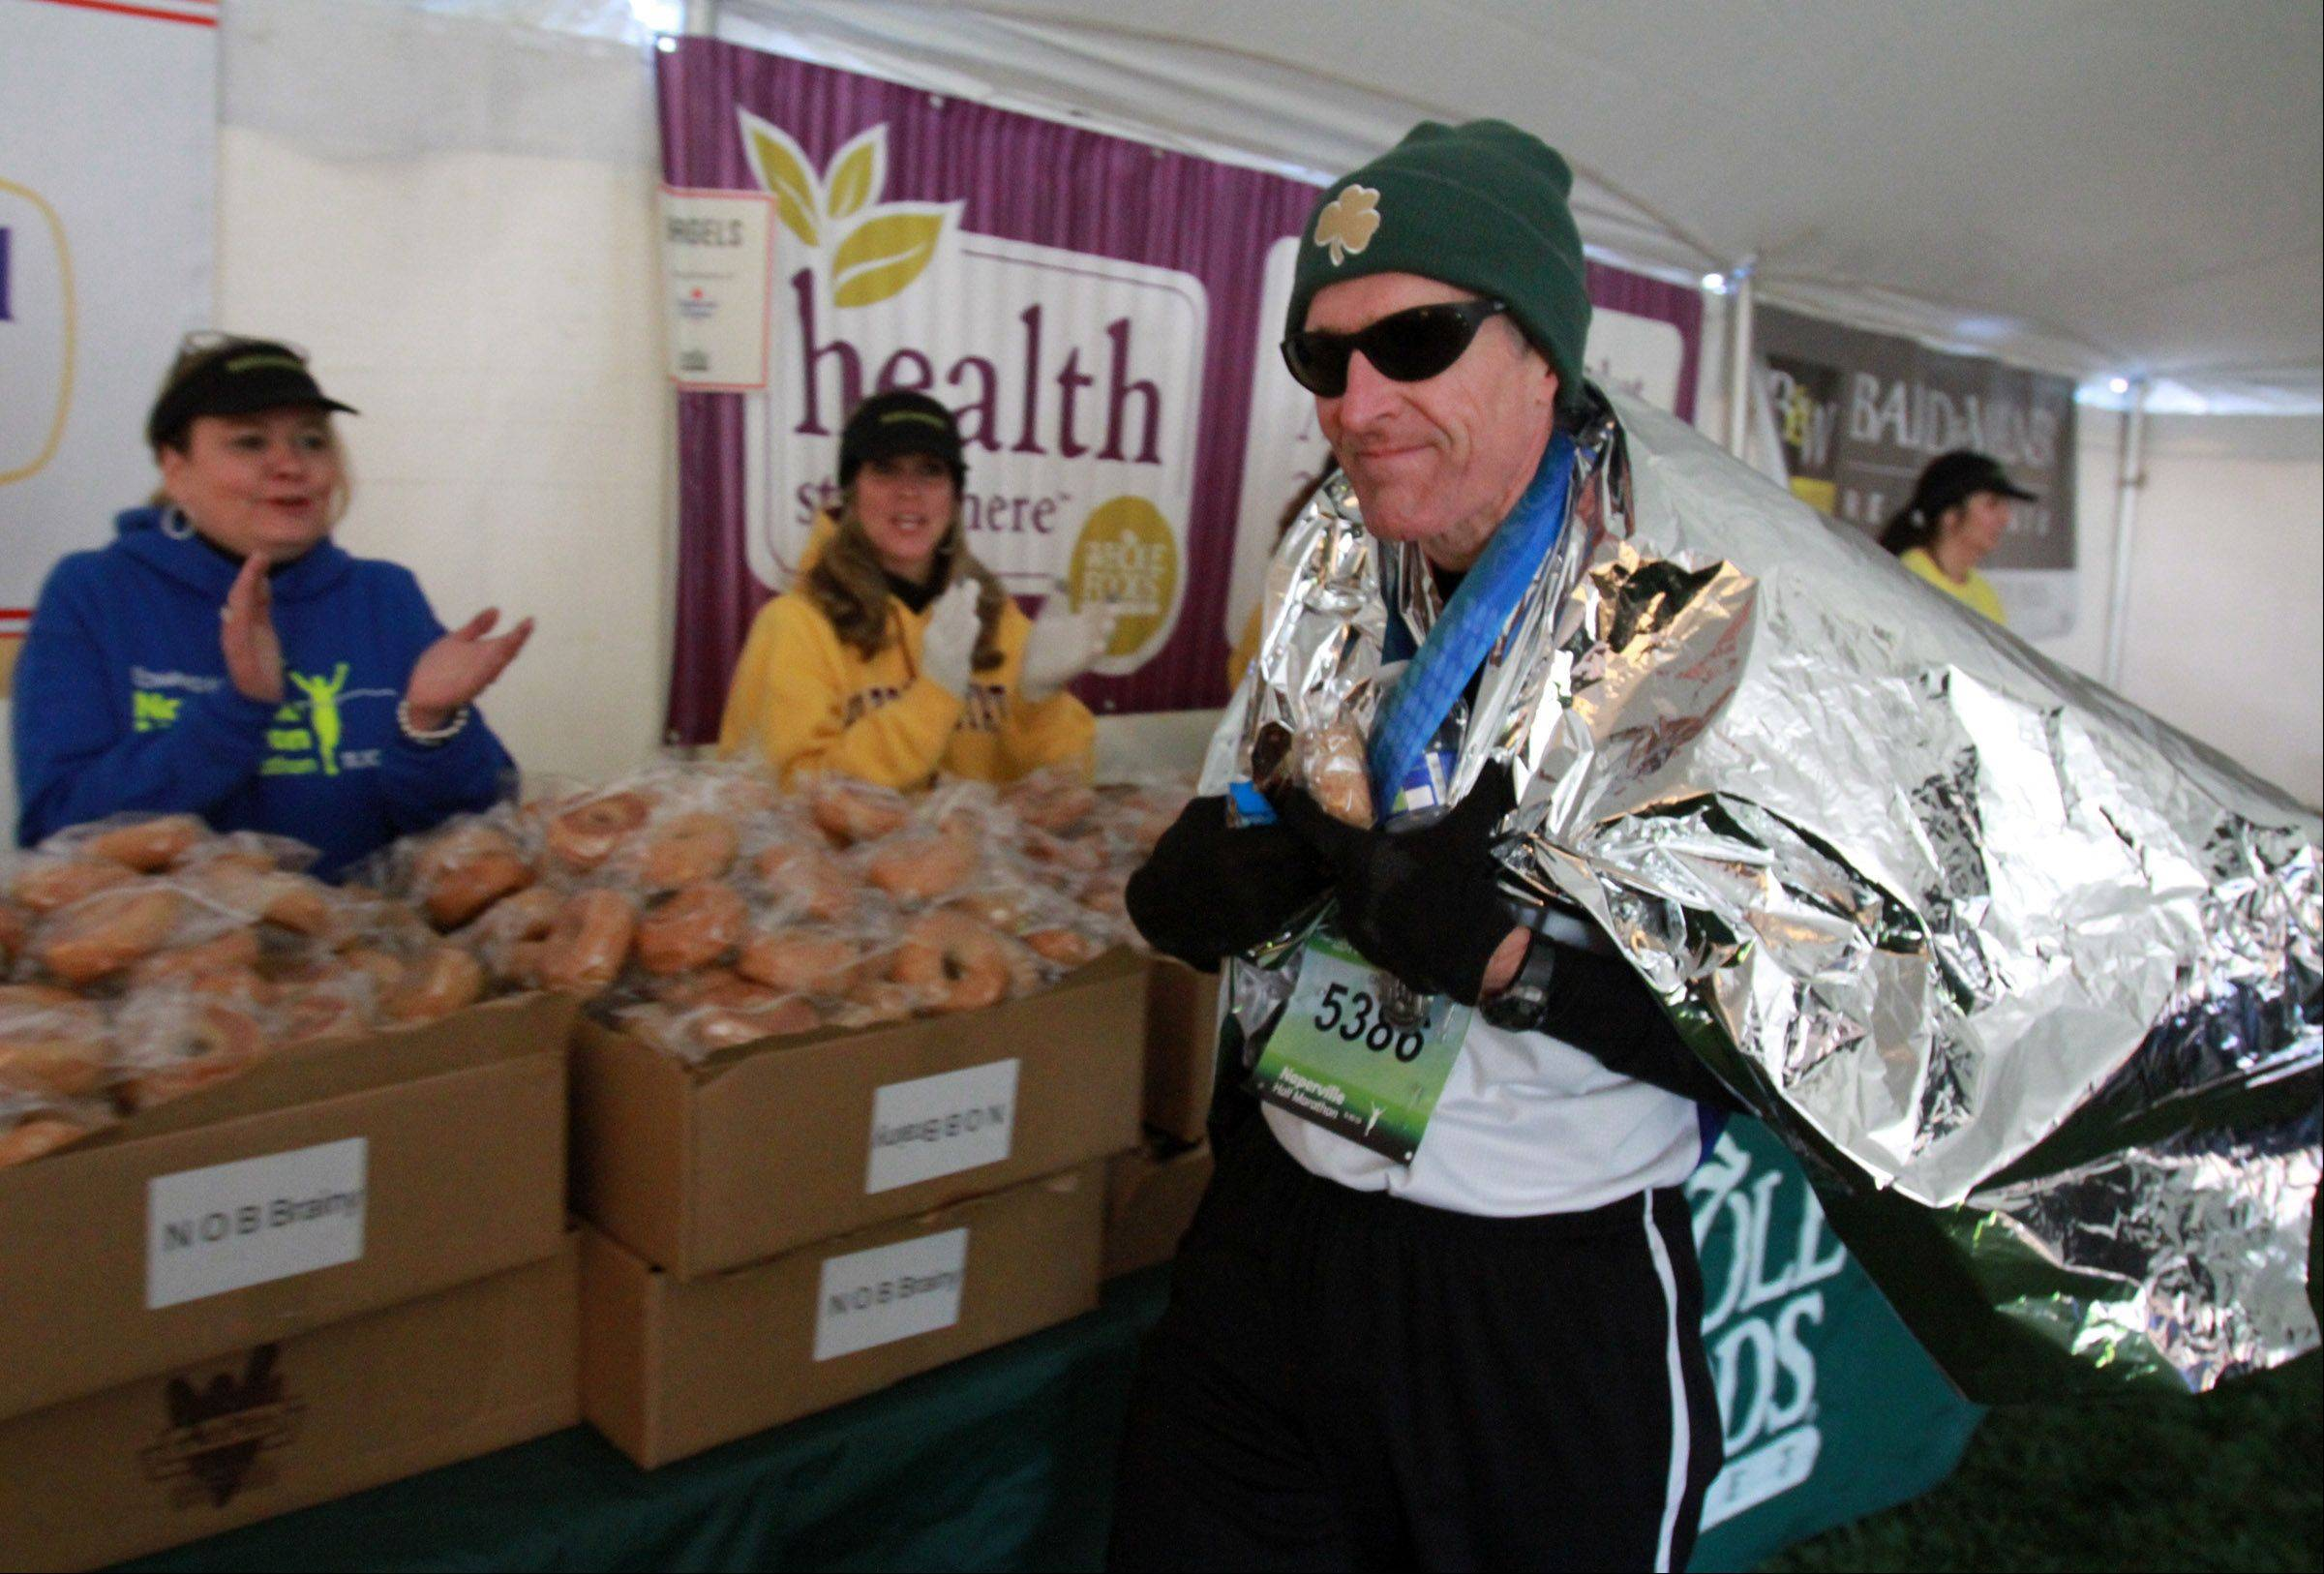 James Owens of Bradford receives a hand from volunteers in the food tent after completing the Edward Hospital half Marathon on Sunday, November 10, 2013.